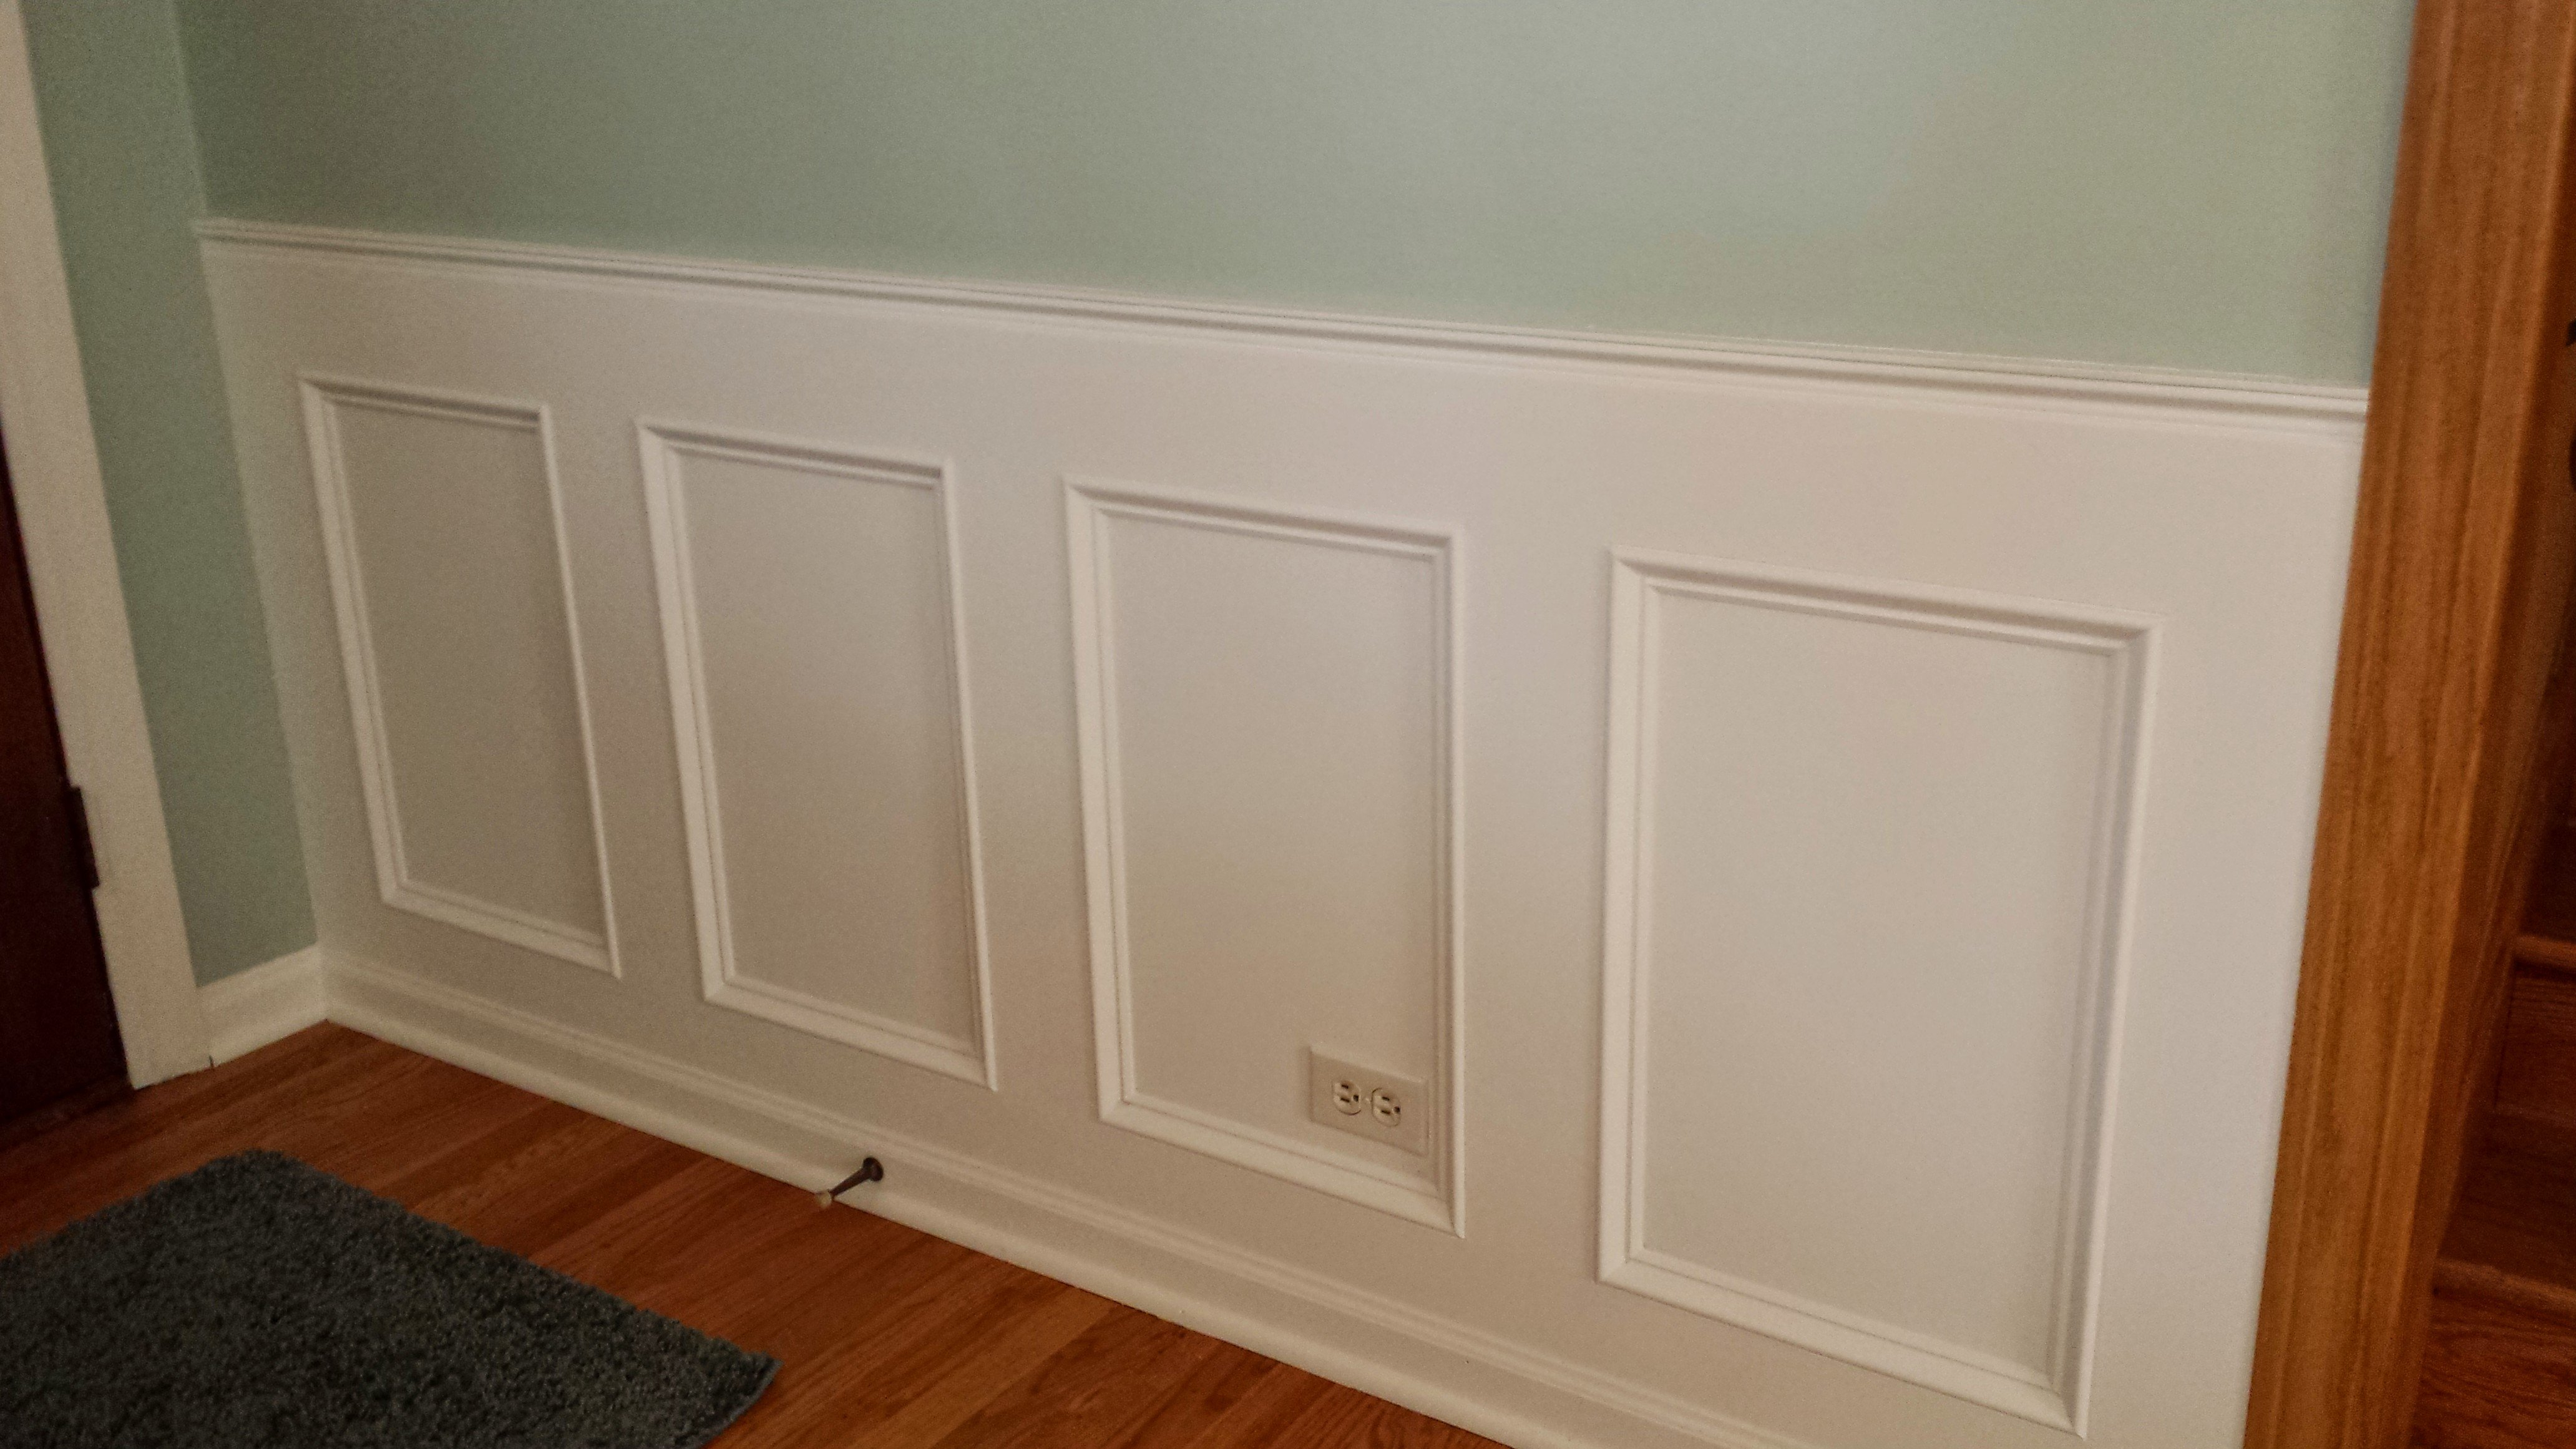 Diy interior window trim - How To Make A Recessed Wainscoting Wall From Scratch